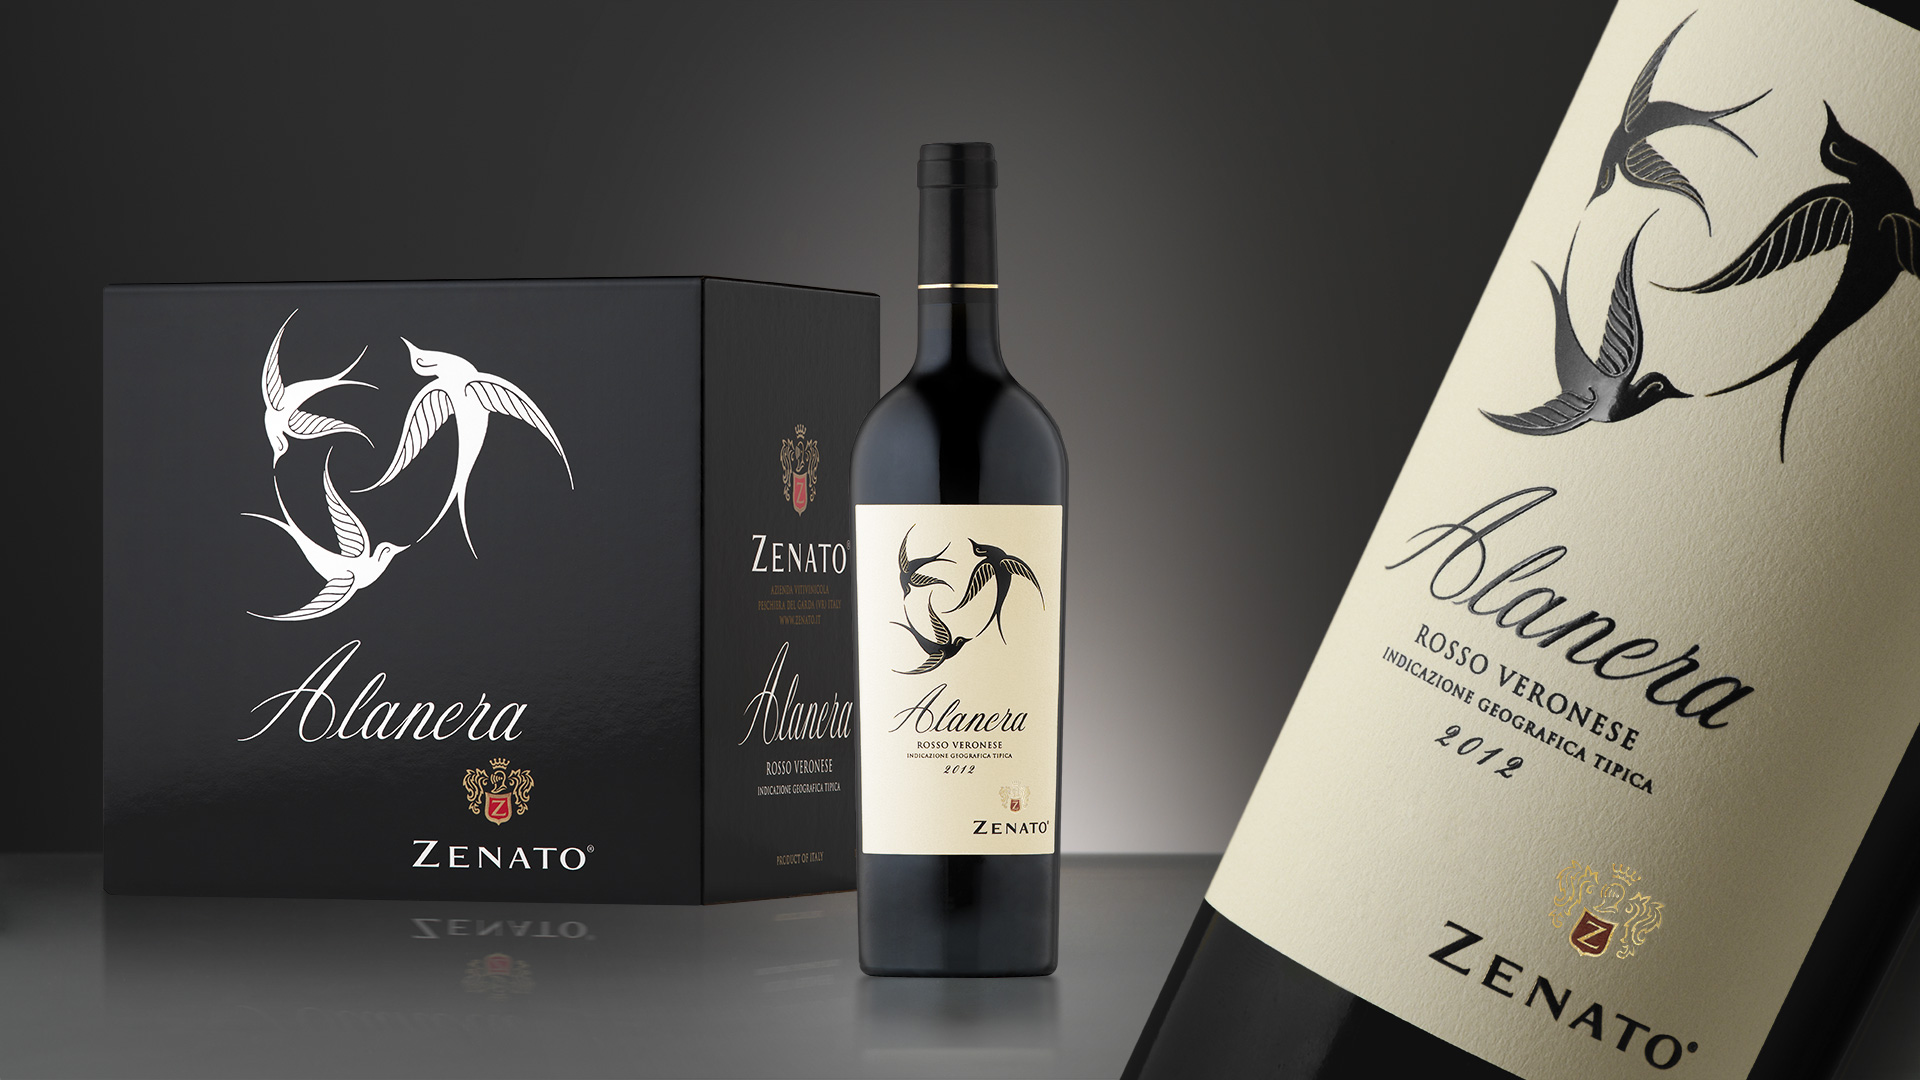 Zenato Alanera packaging